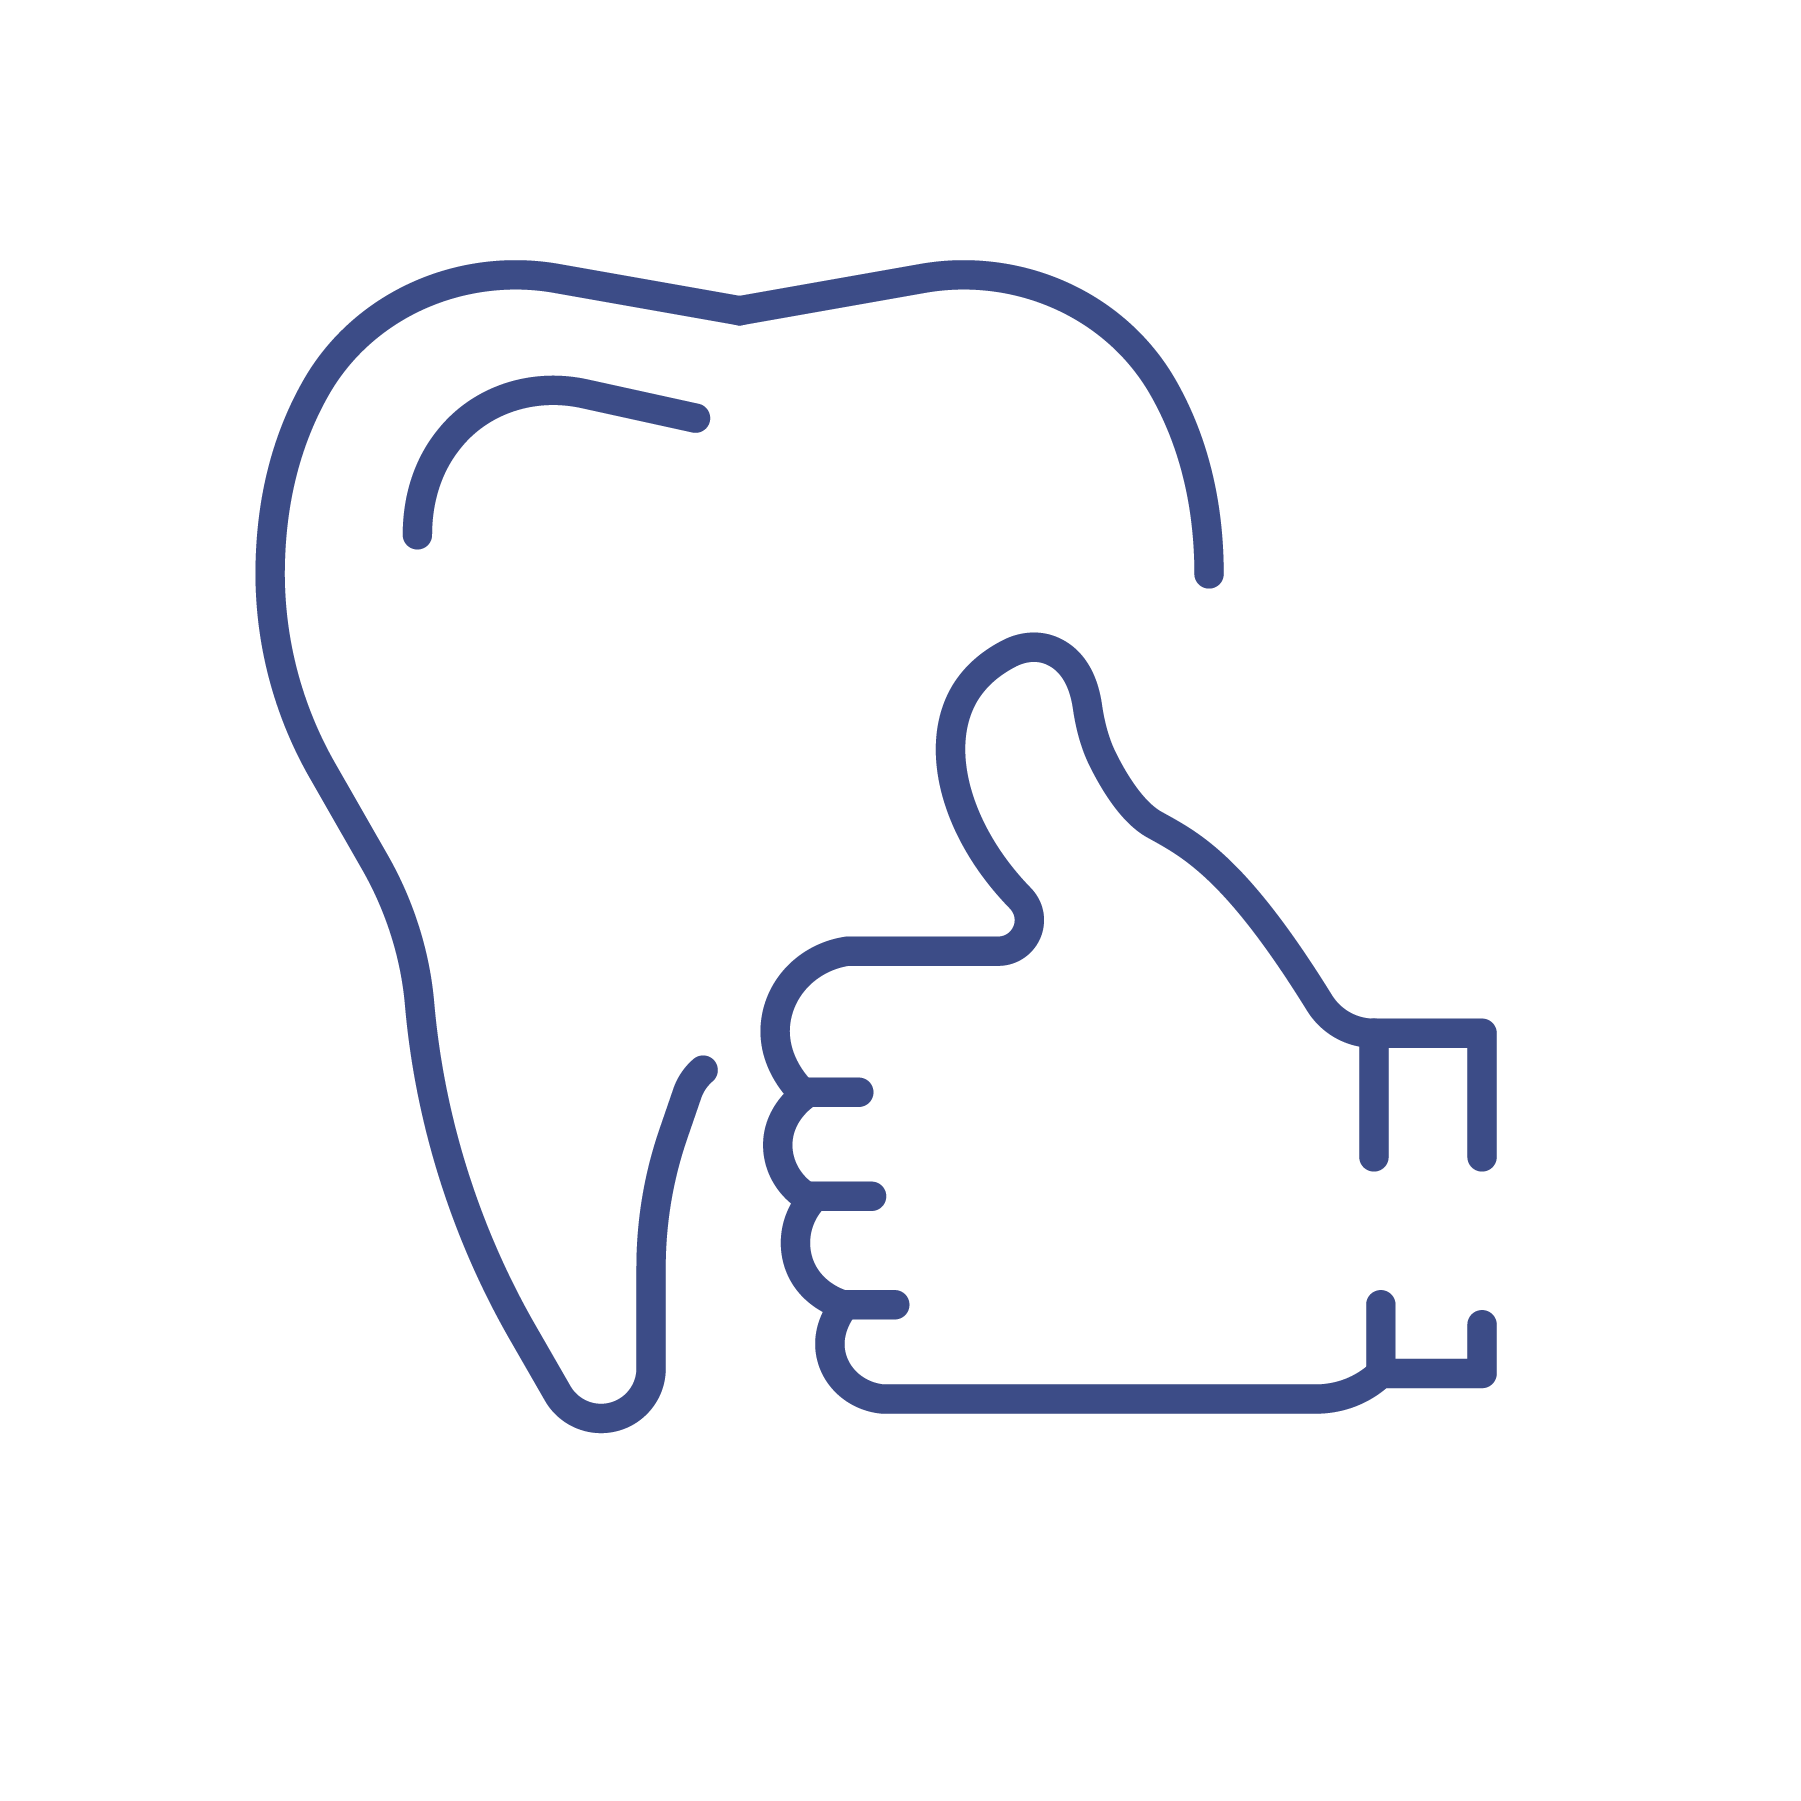 tooth and thumbs up icon